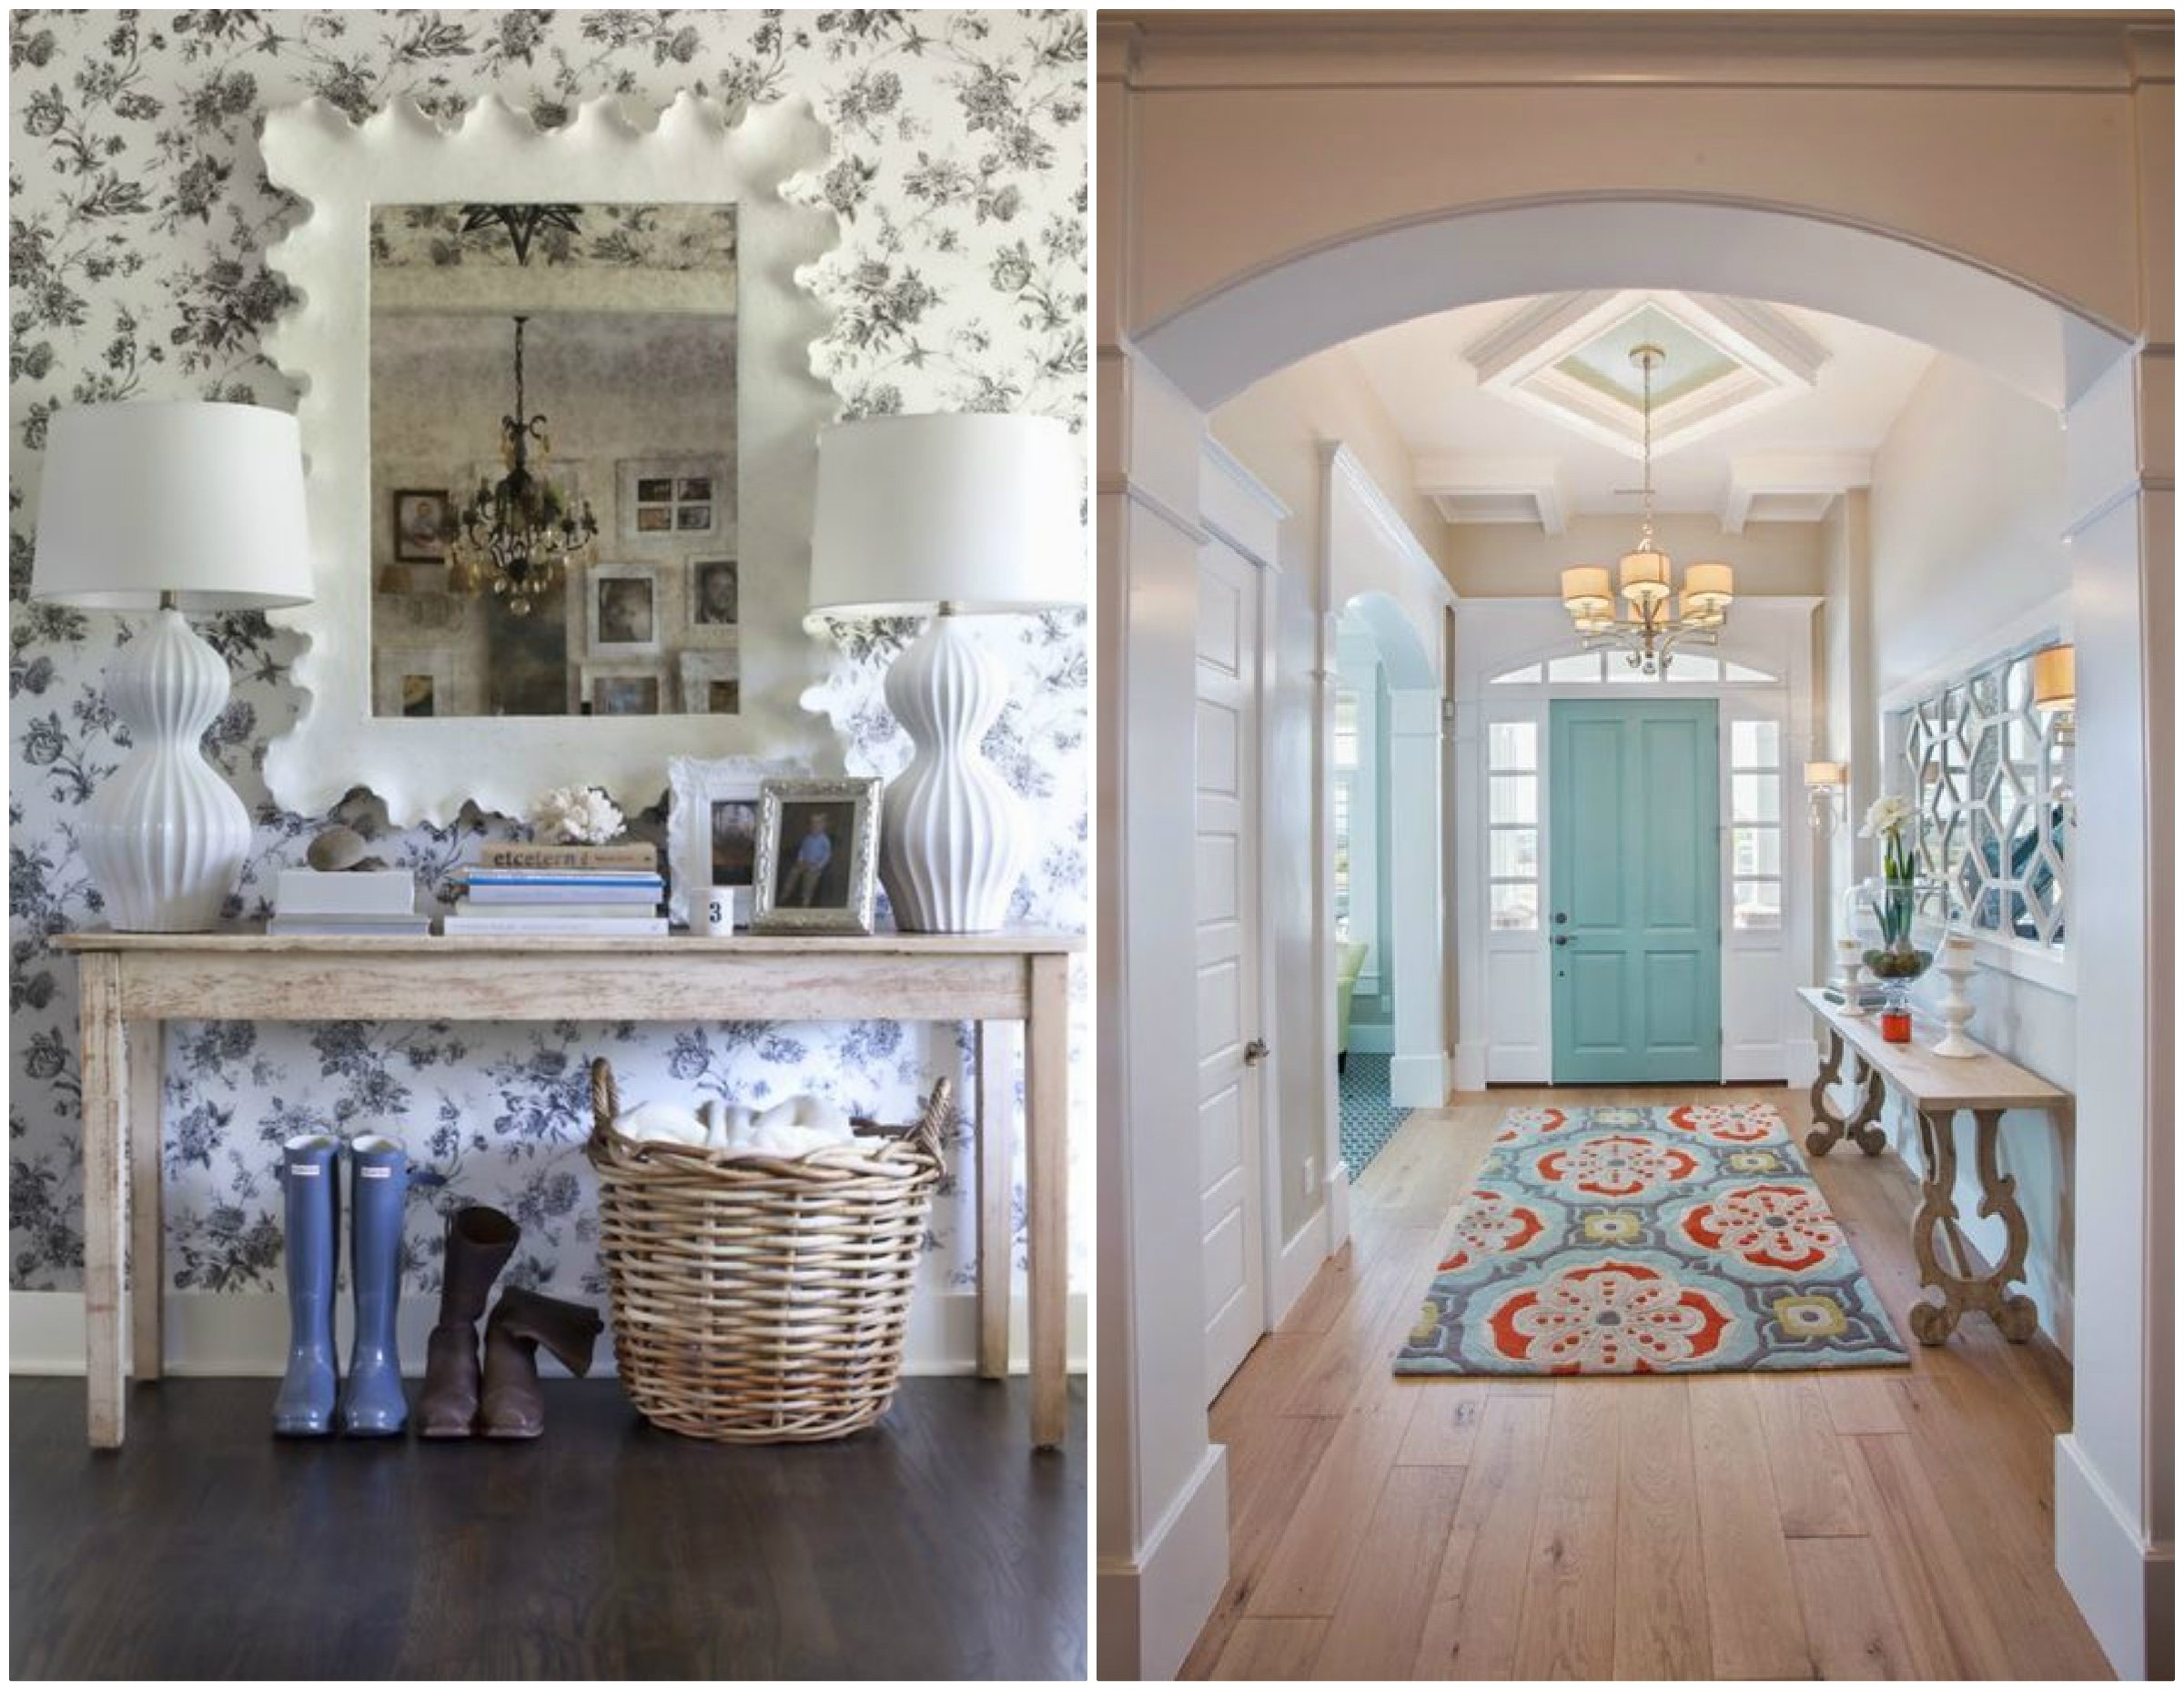 entryway ideas - 10 gorgeous ideas for your home with mega style